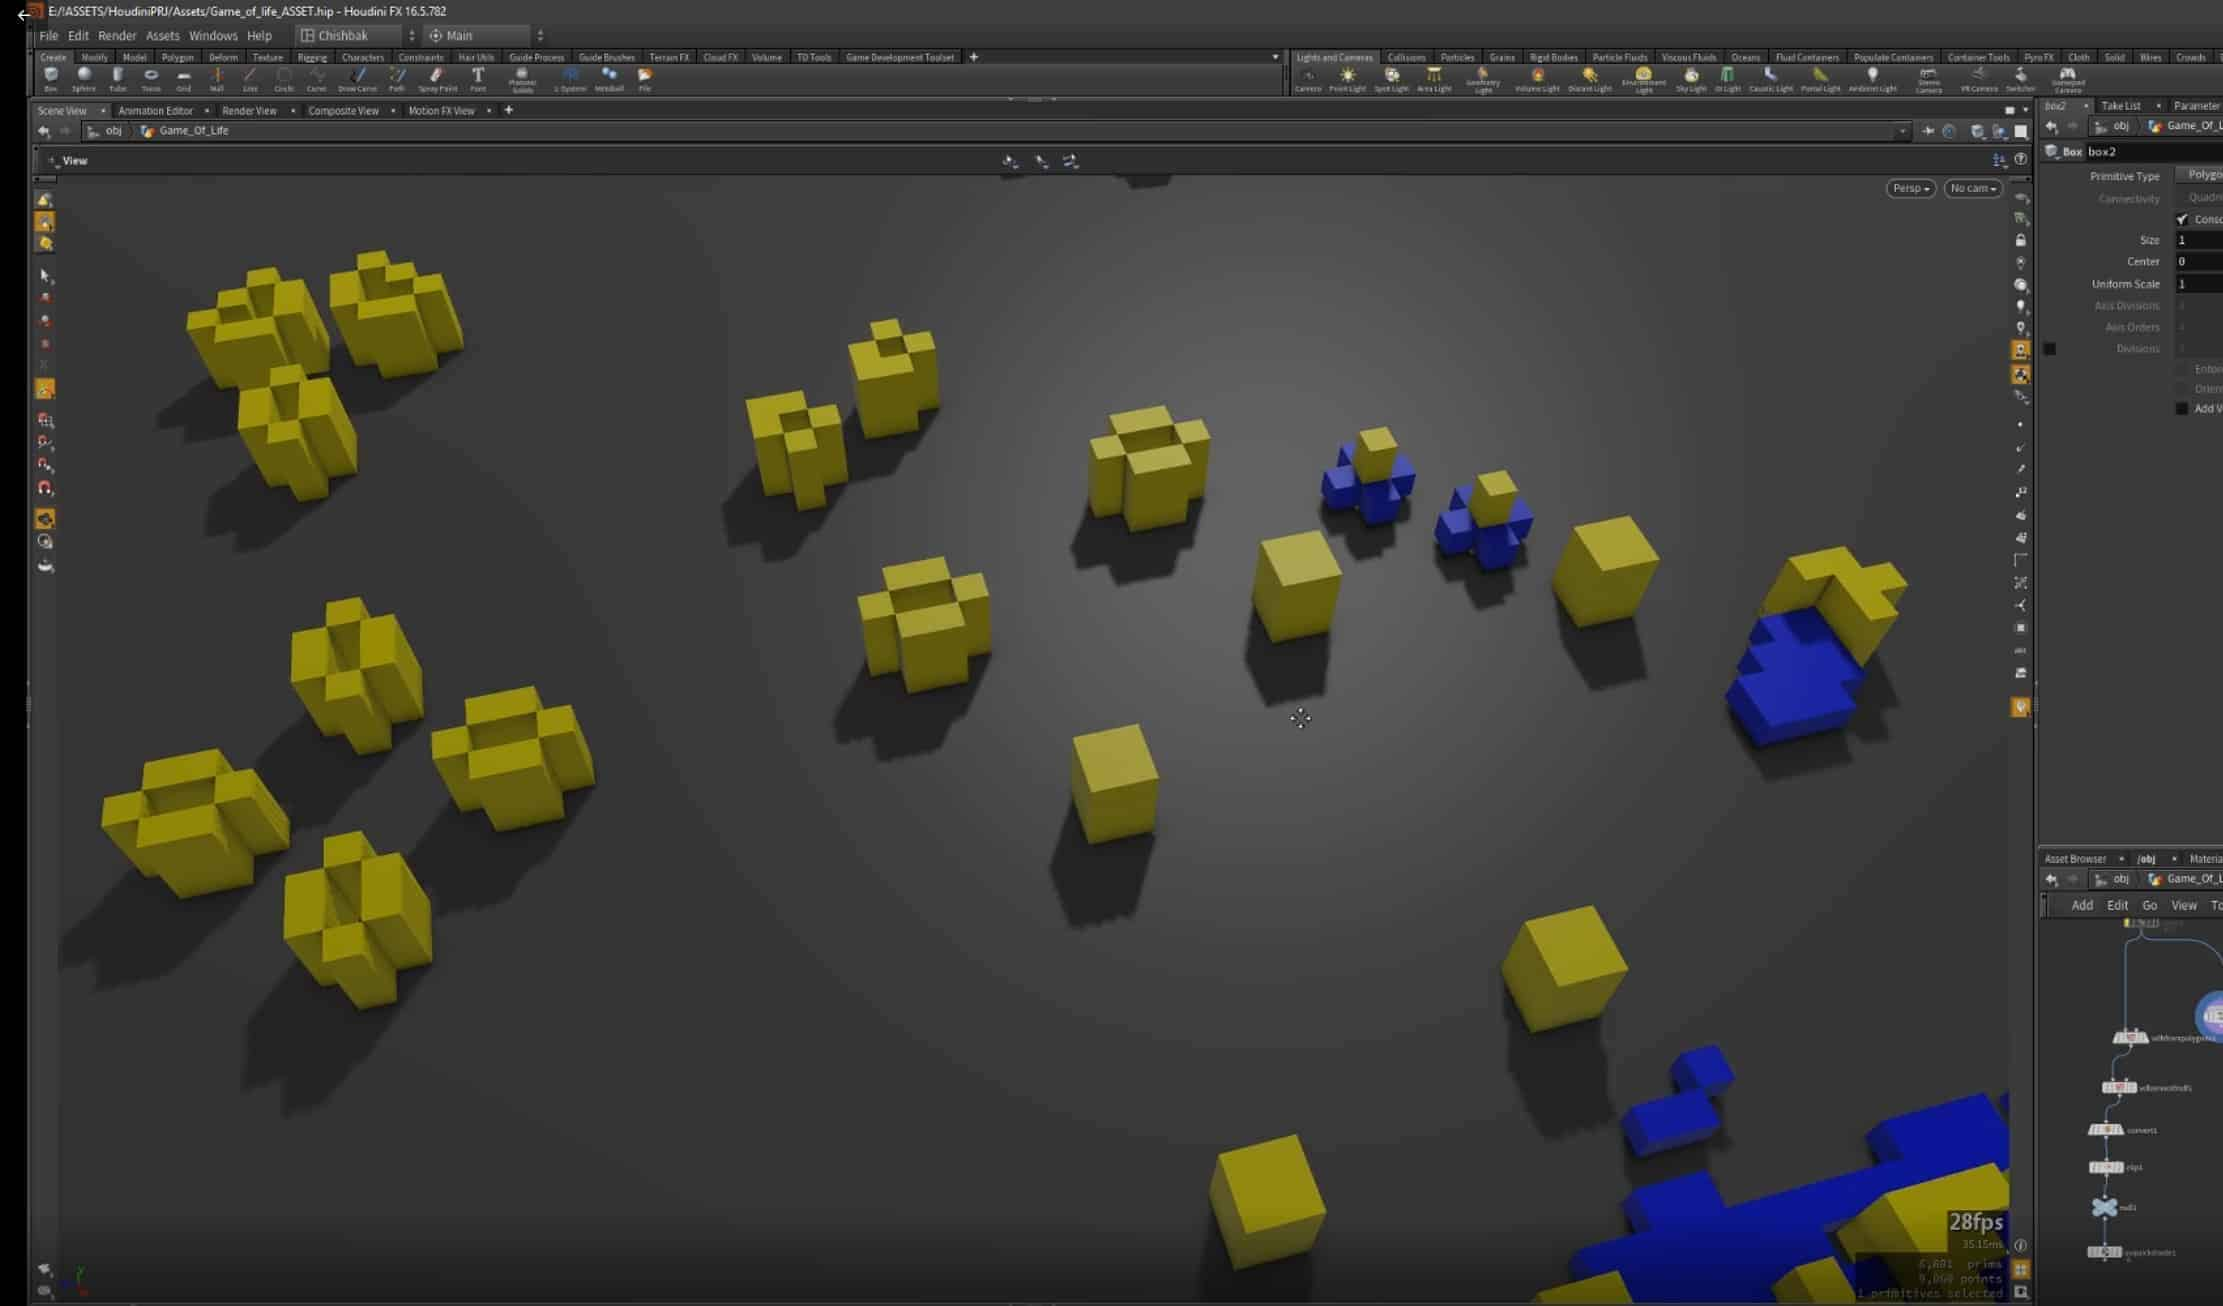 Cellular Automata Asset For Houdini - Game of Life